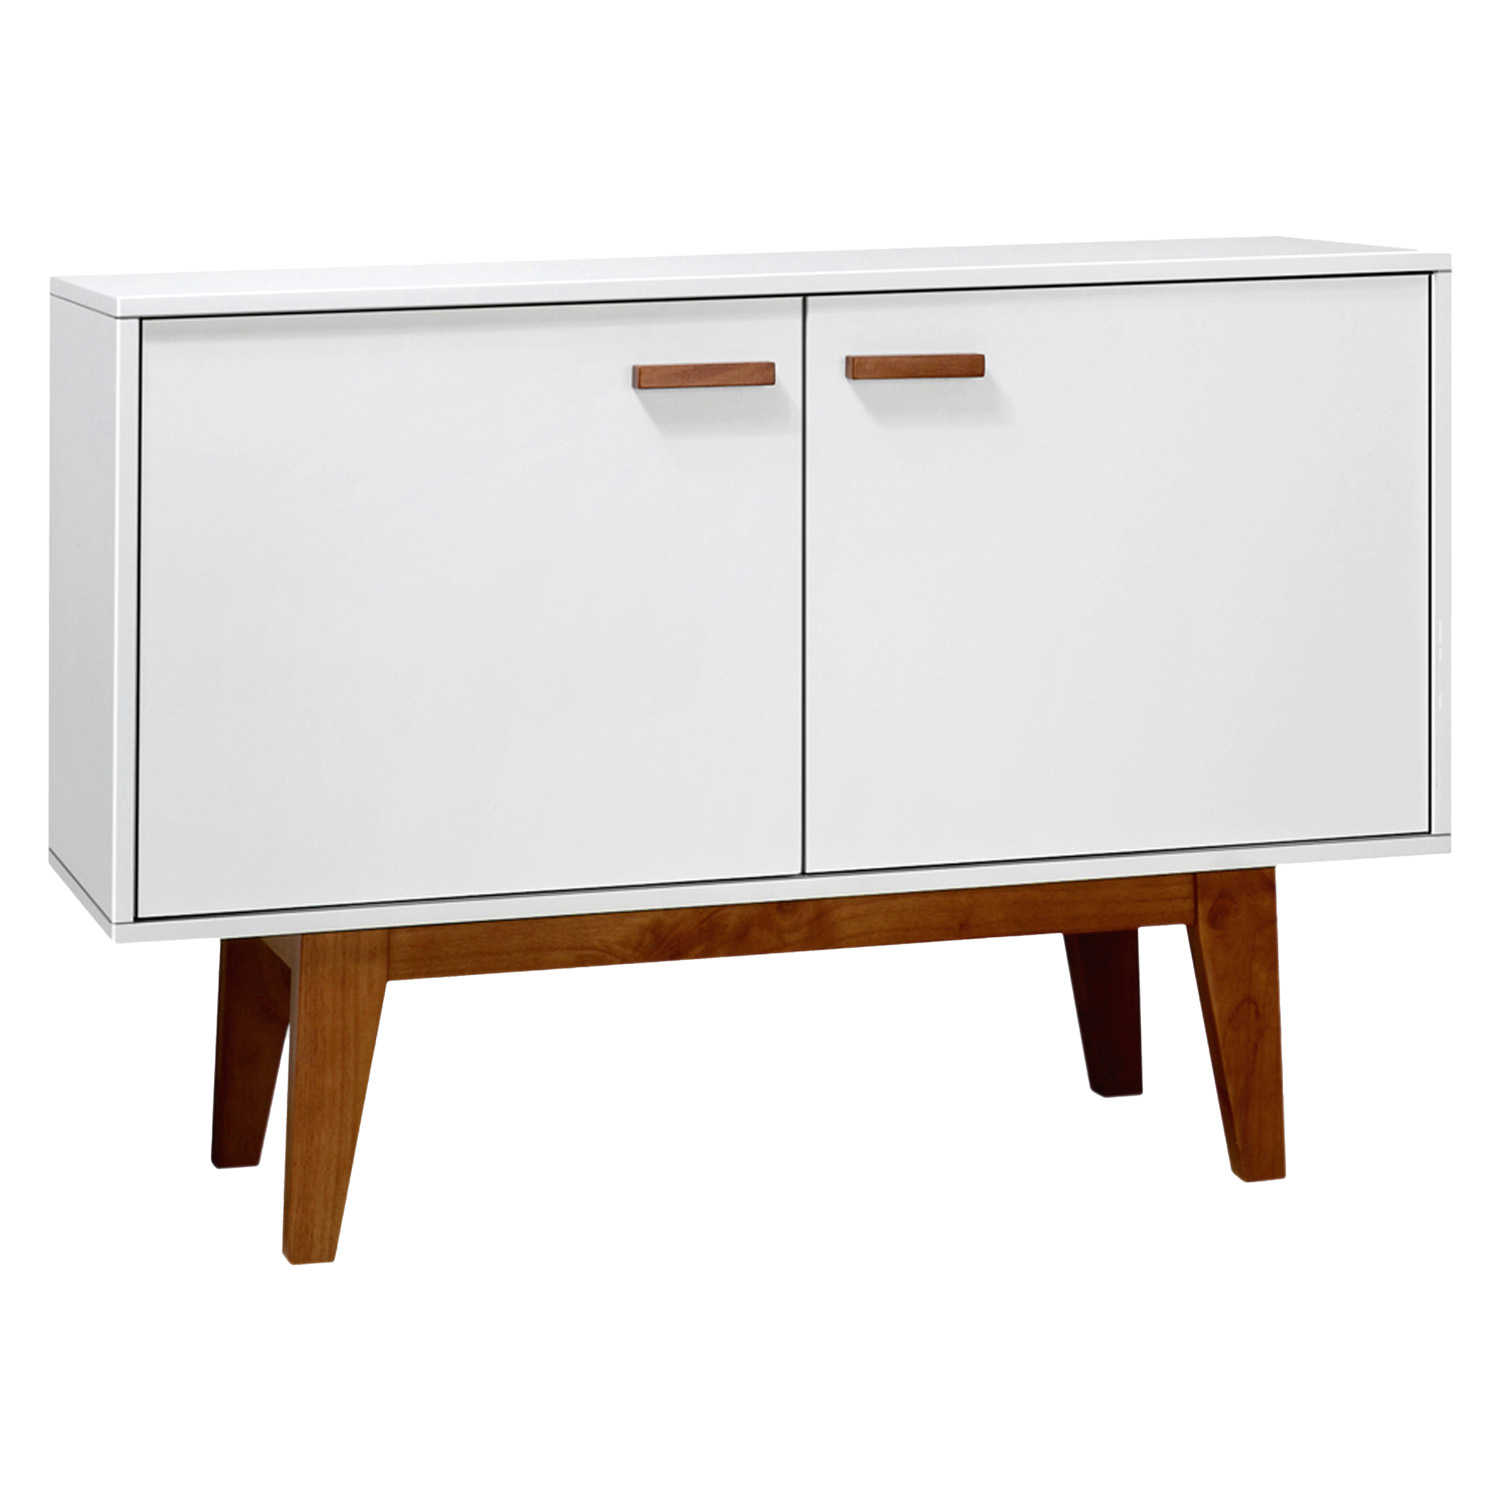 Resort Living Ortland cabinet